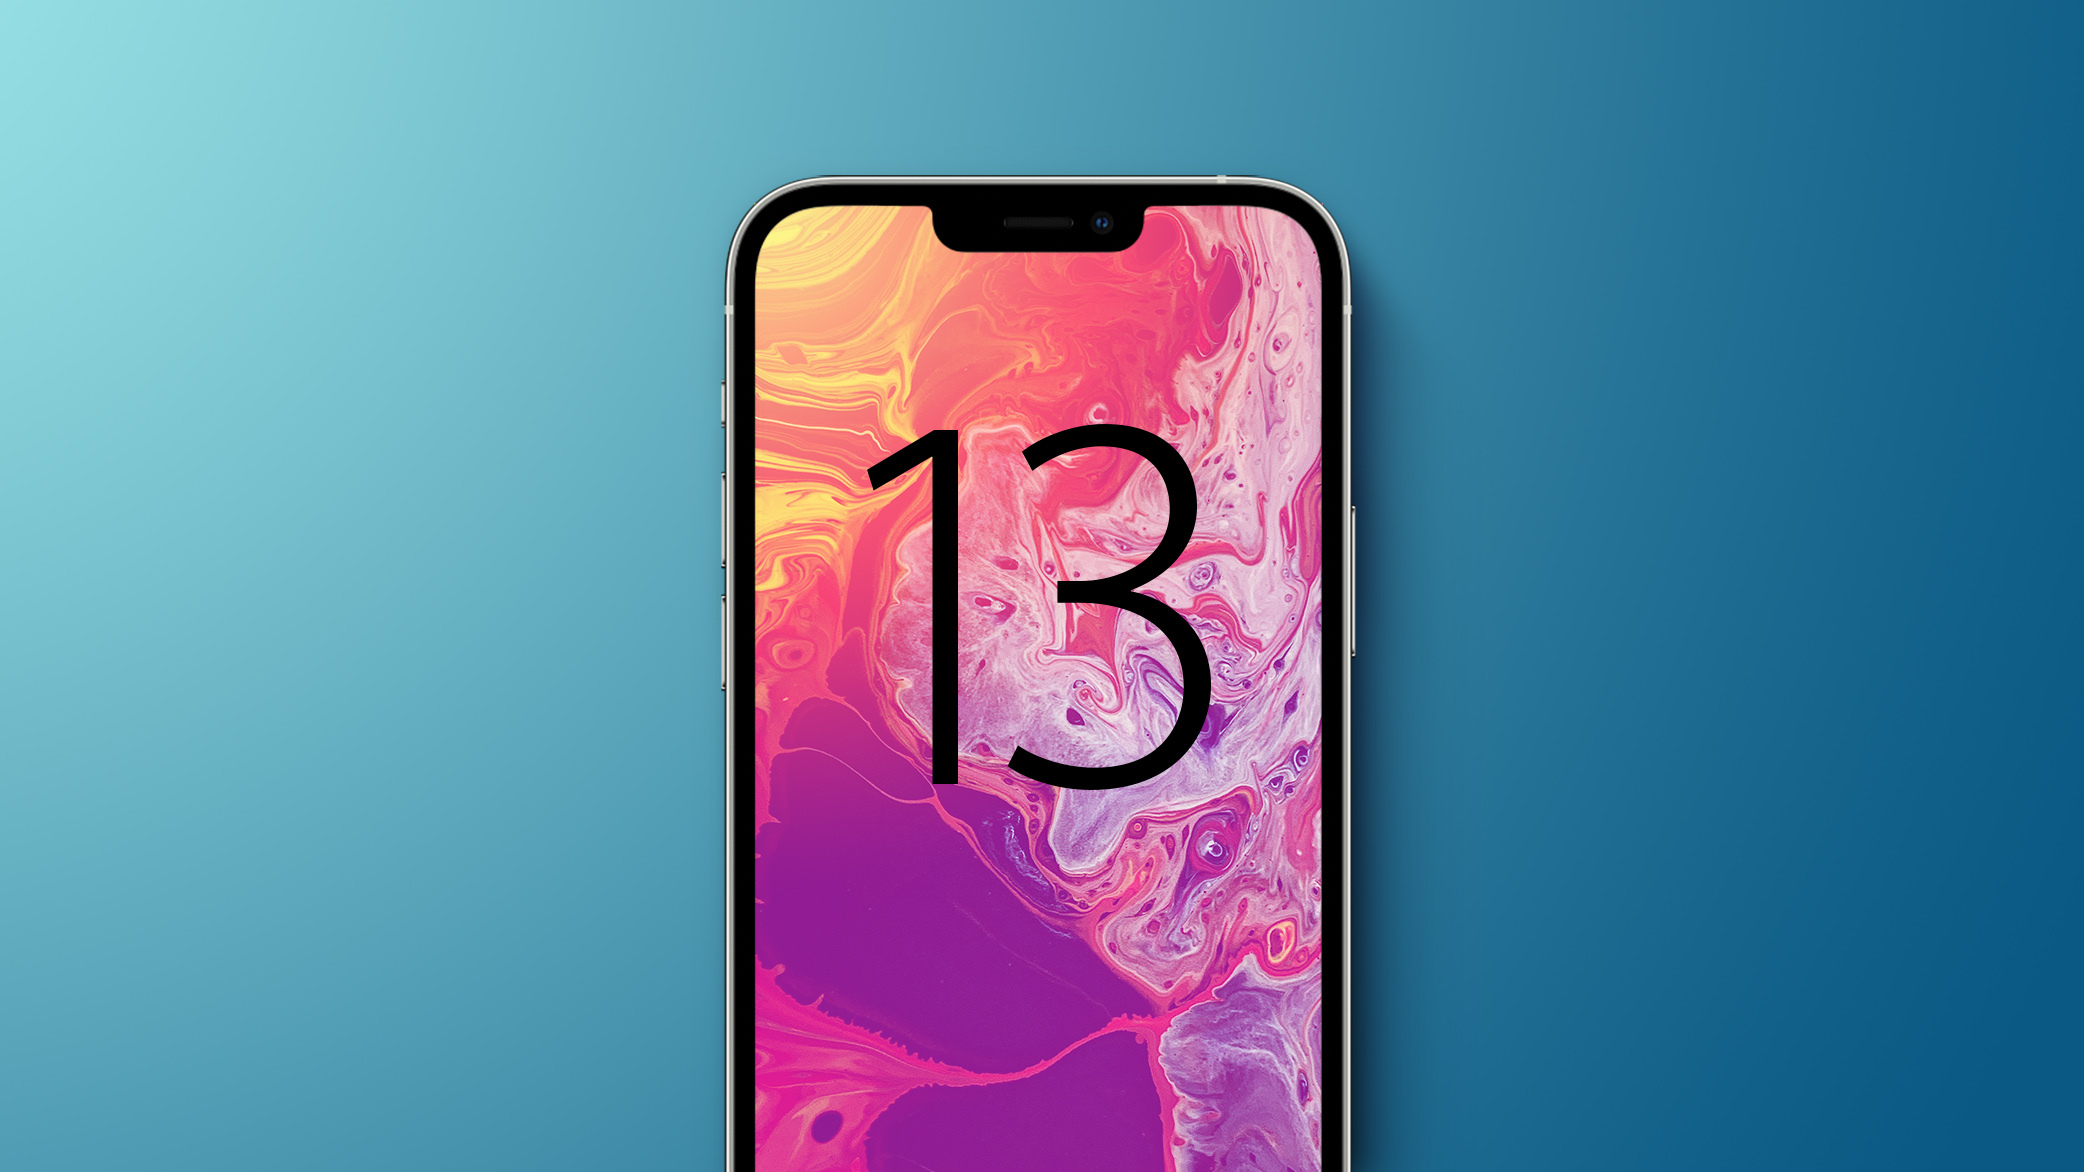 iphone 13 blue with text